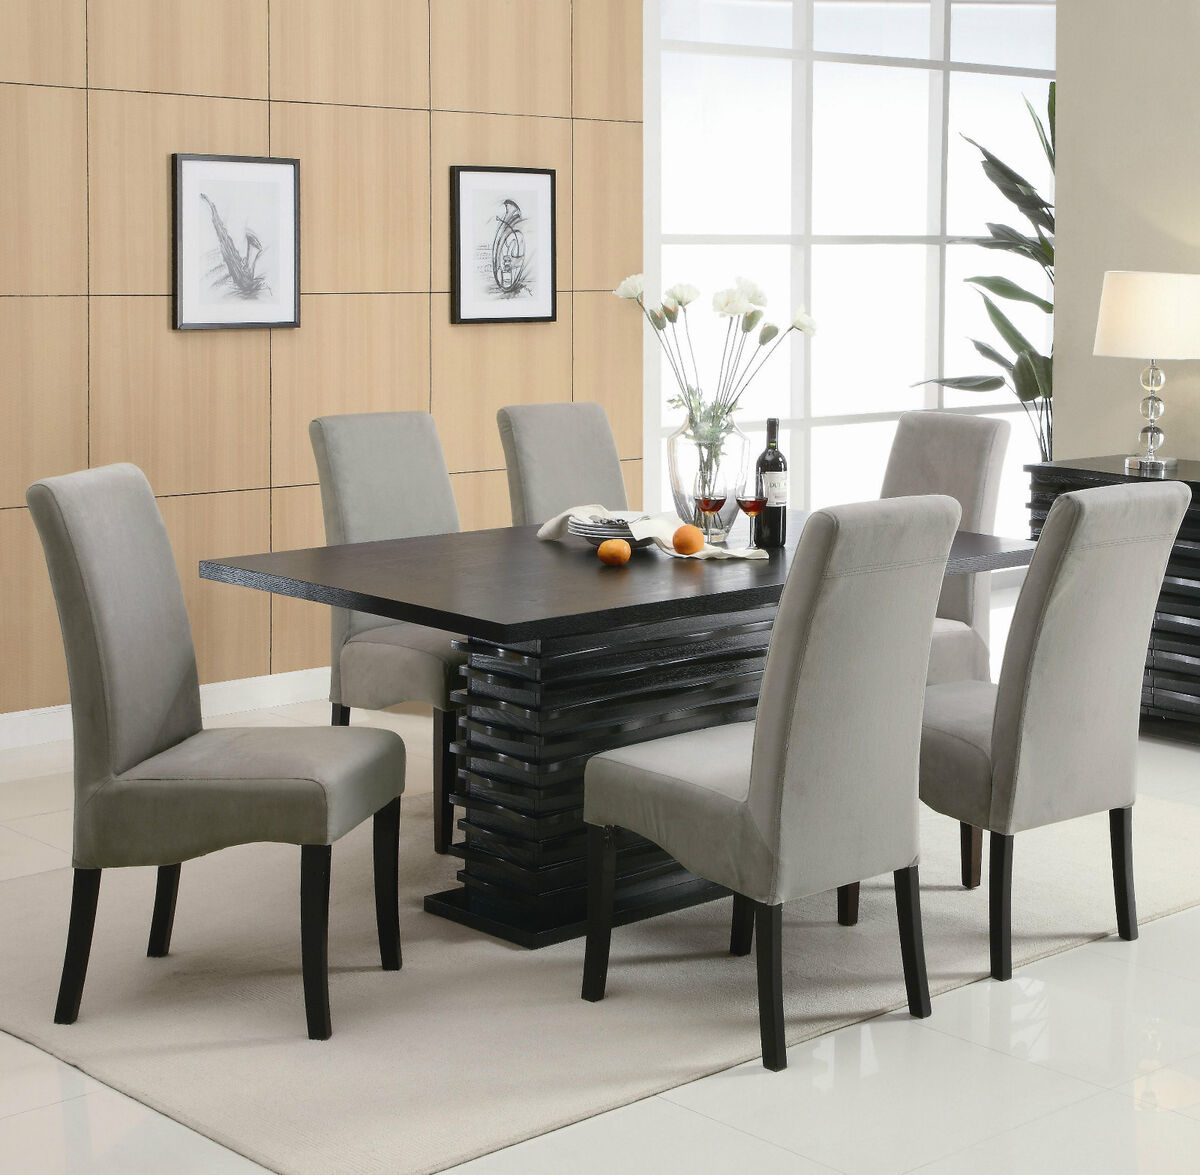 Magnificent Contemporary Dining Table Sets 1200 x 1175 · 161 kB · jpeg